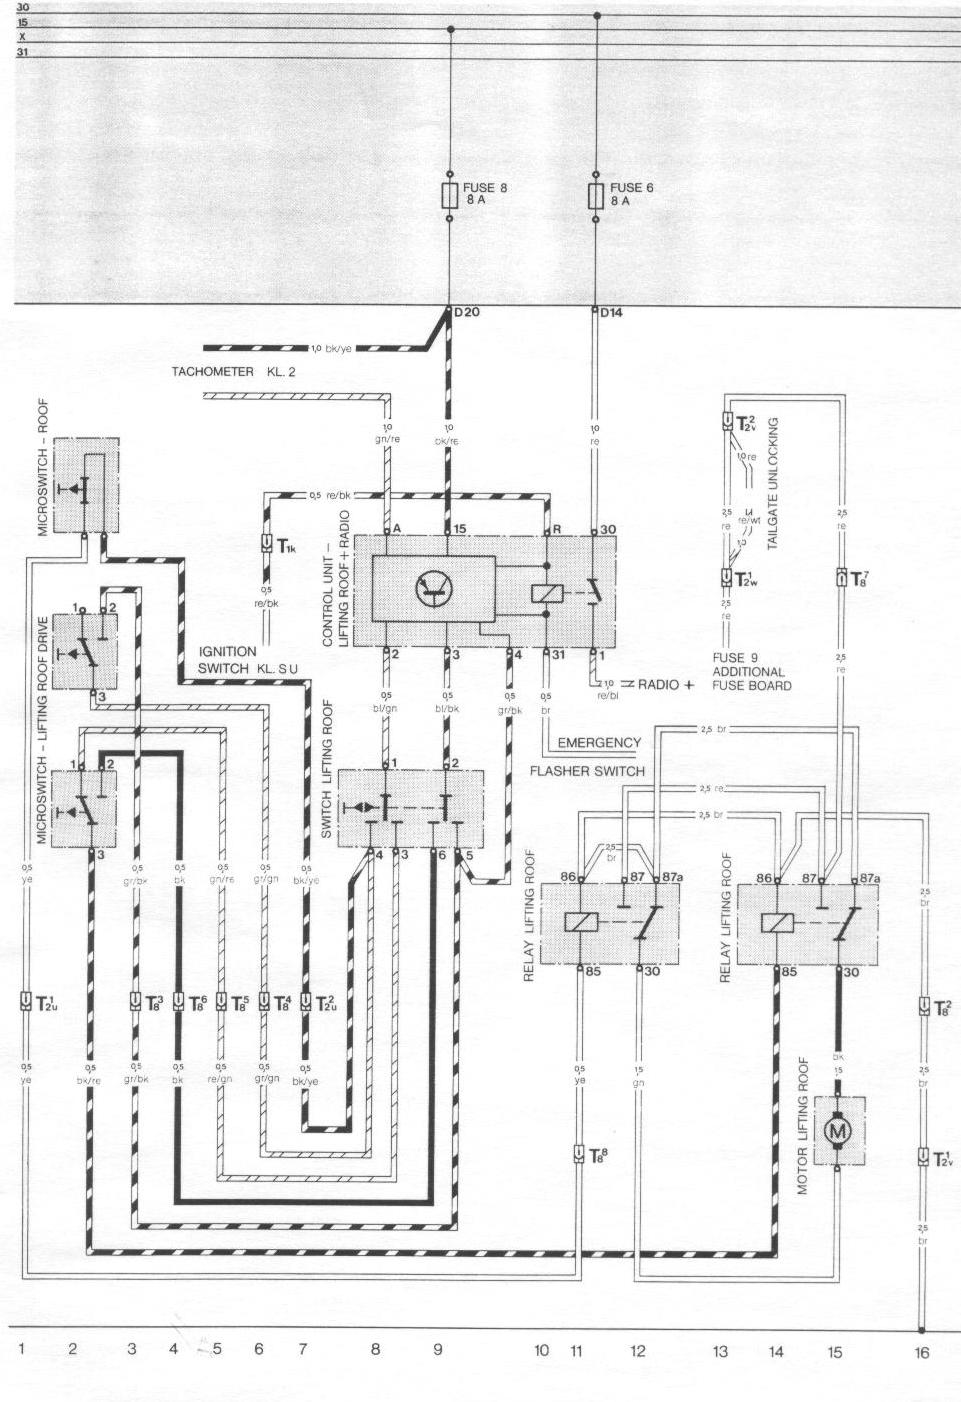 944_84_sunroof pelican parts porsche 924 944 electrical diagrams 1983 porsche 944 fuse box diagram at gsmx.co